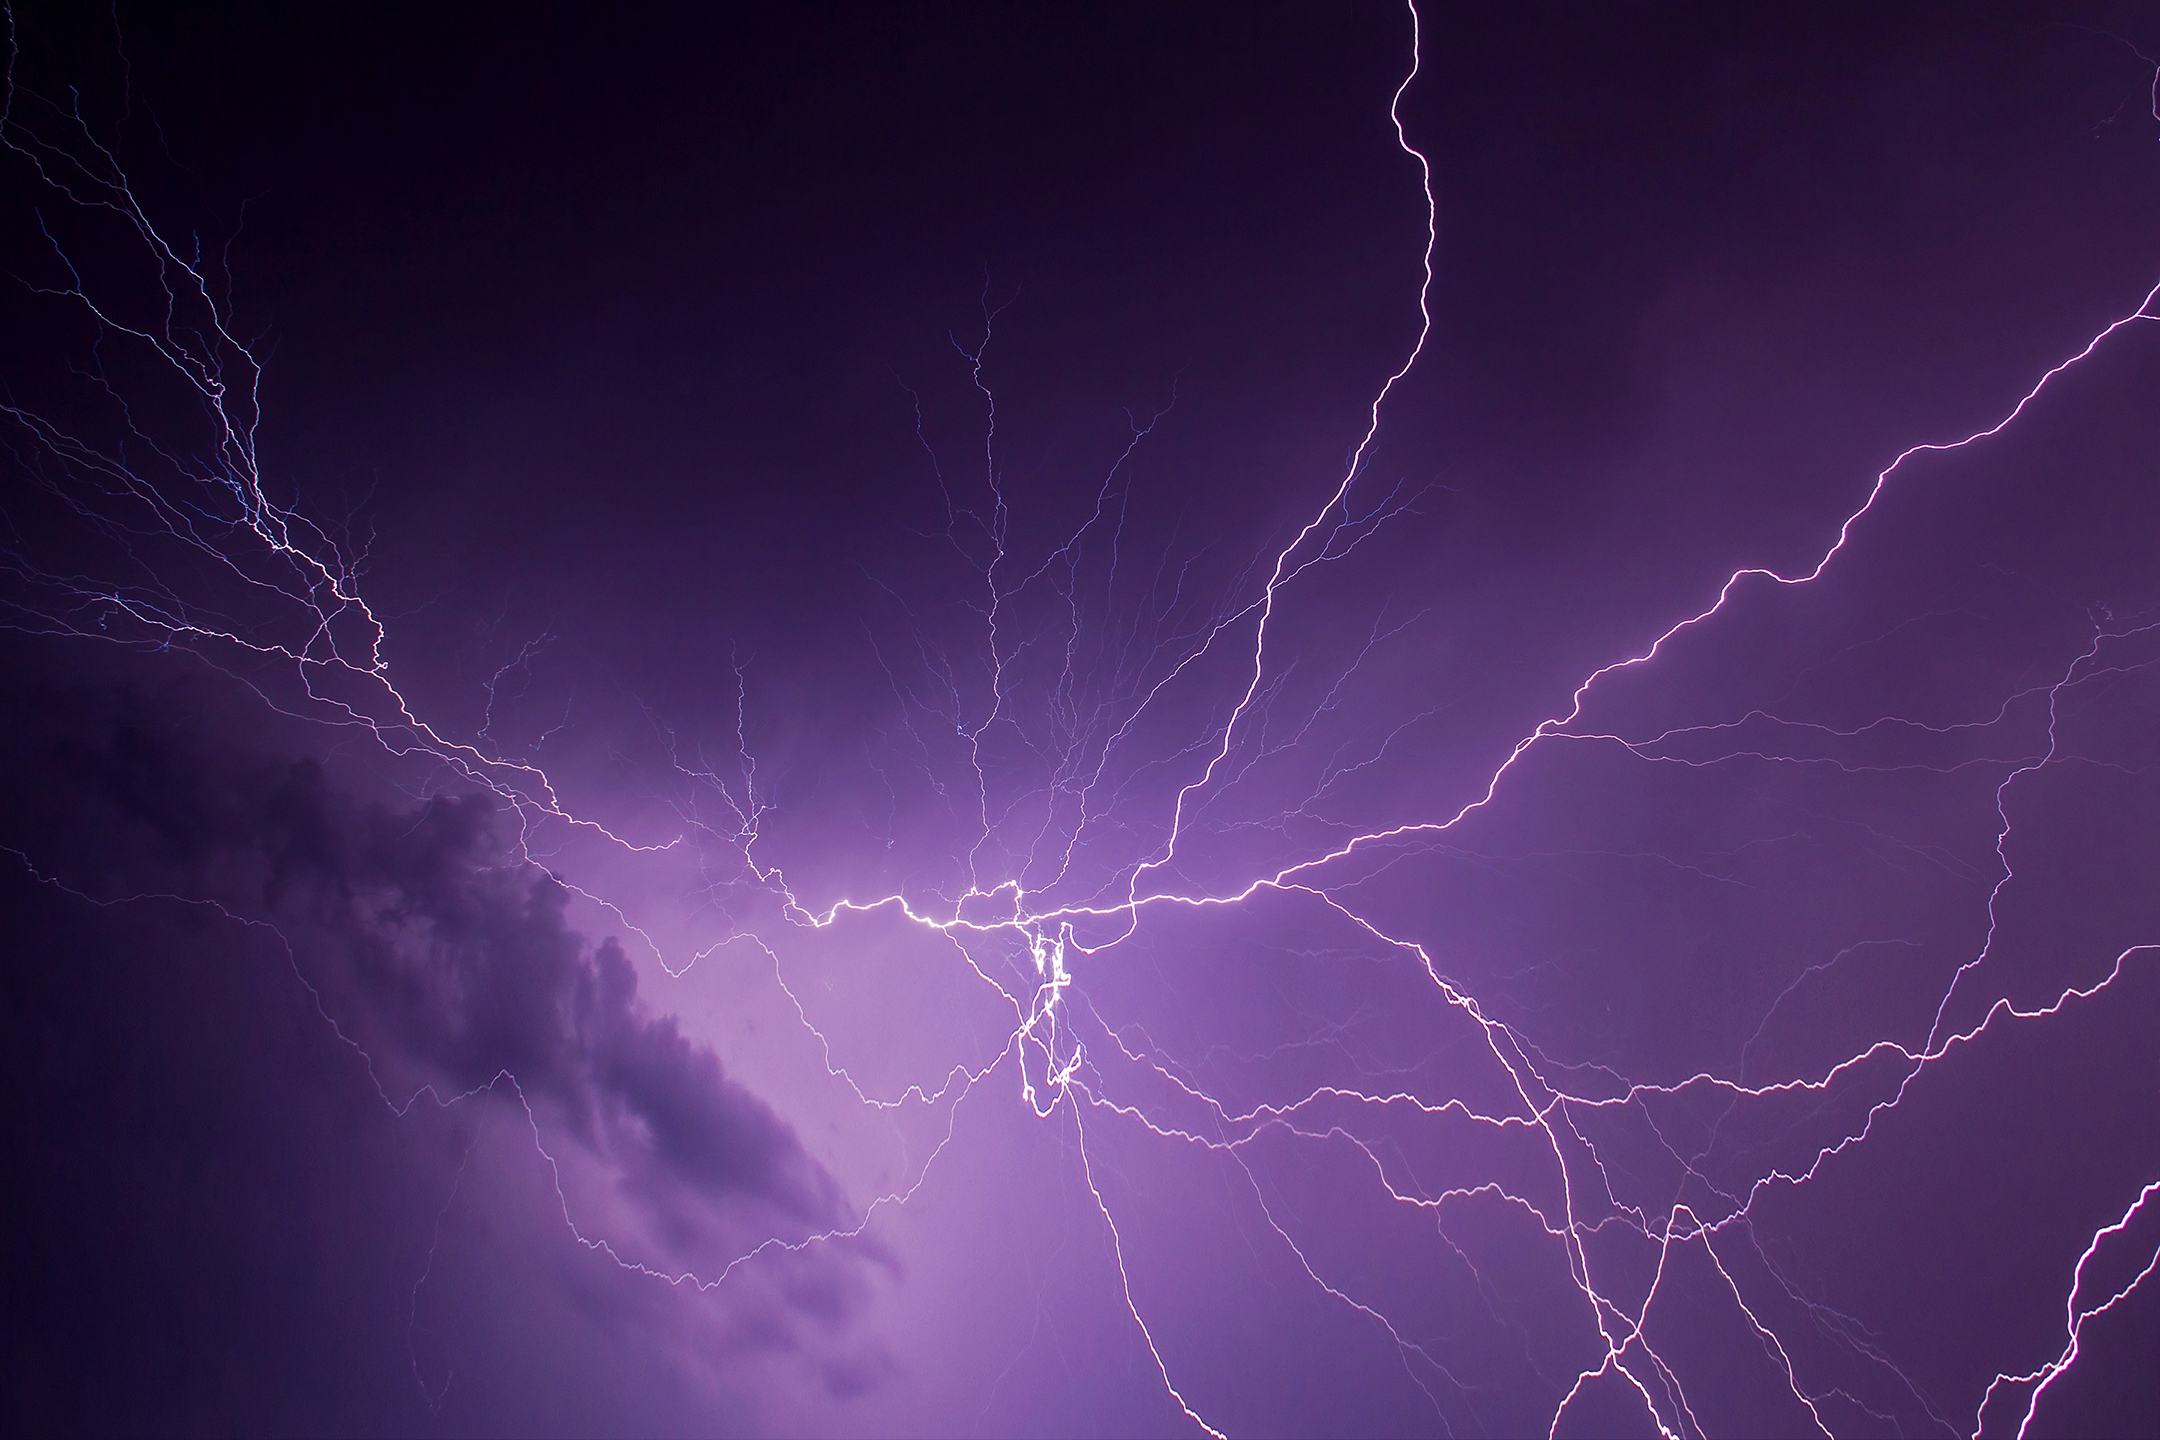 Lightning across a purple sky